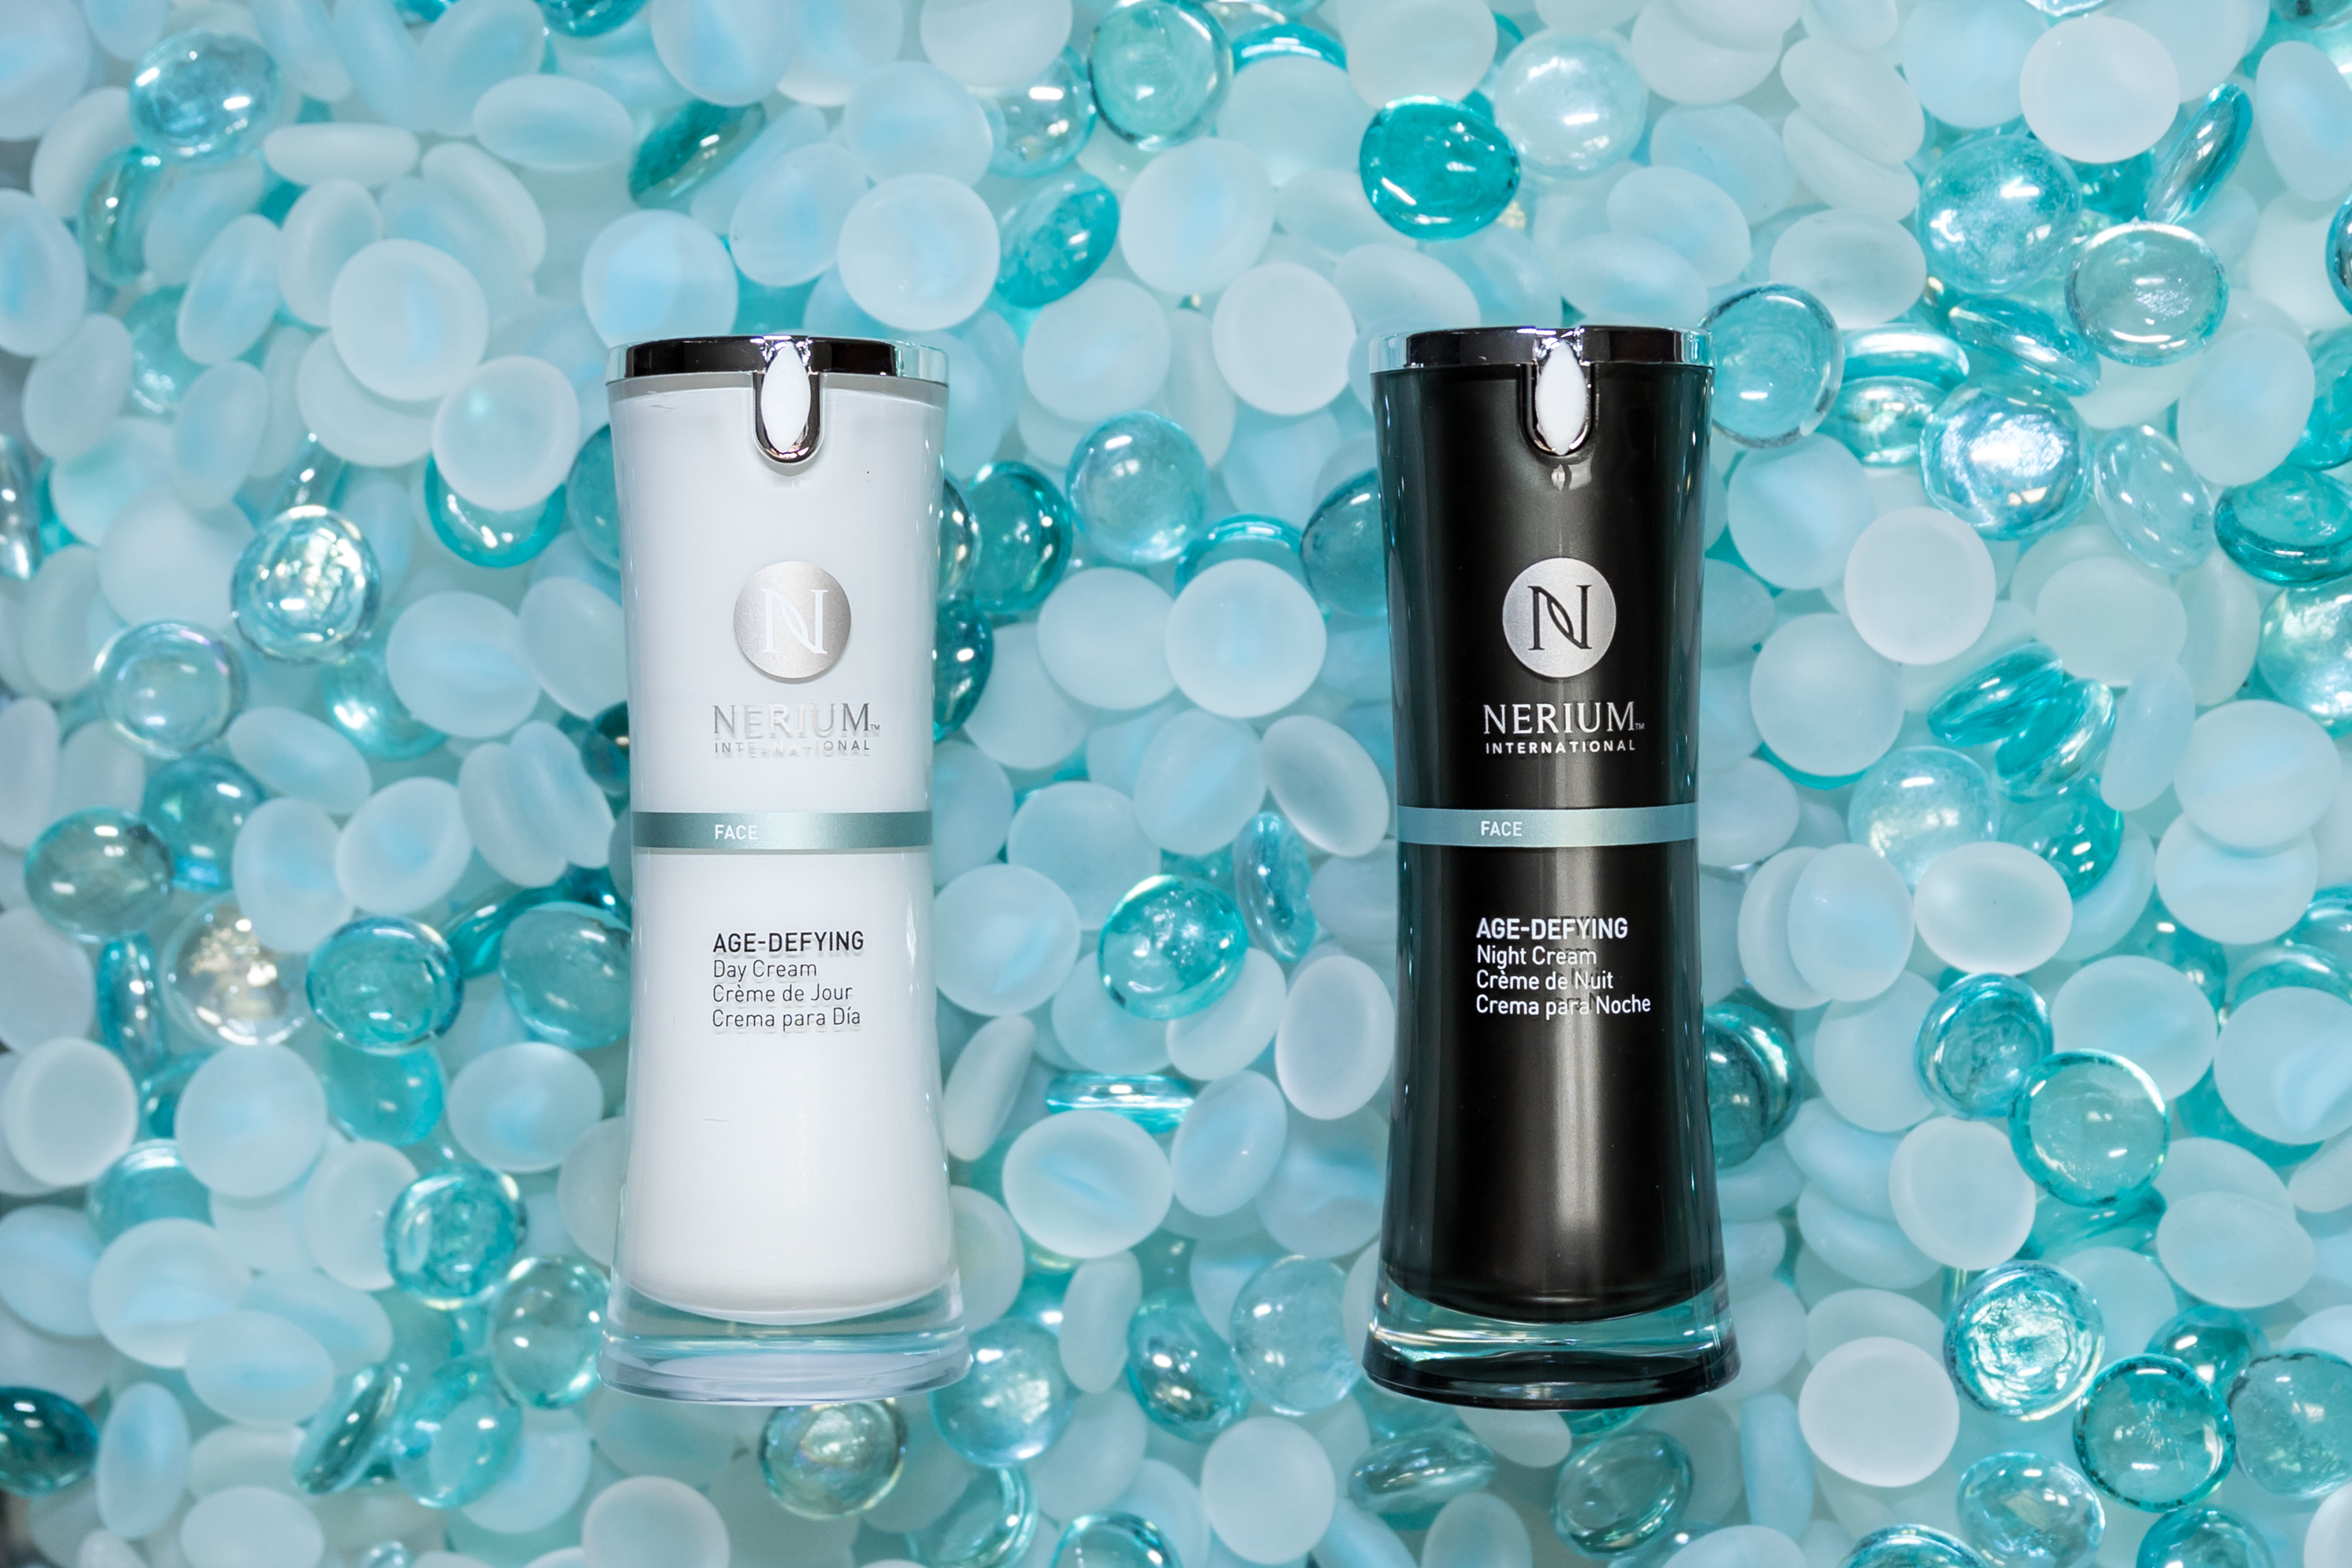 anti-aging and youthful-looking skin